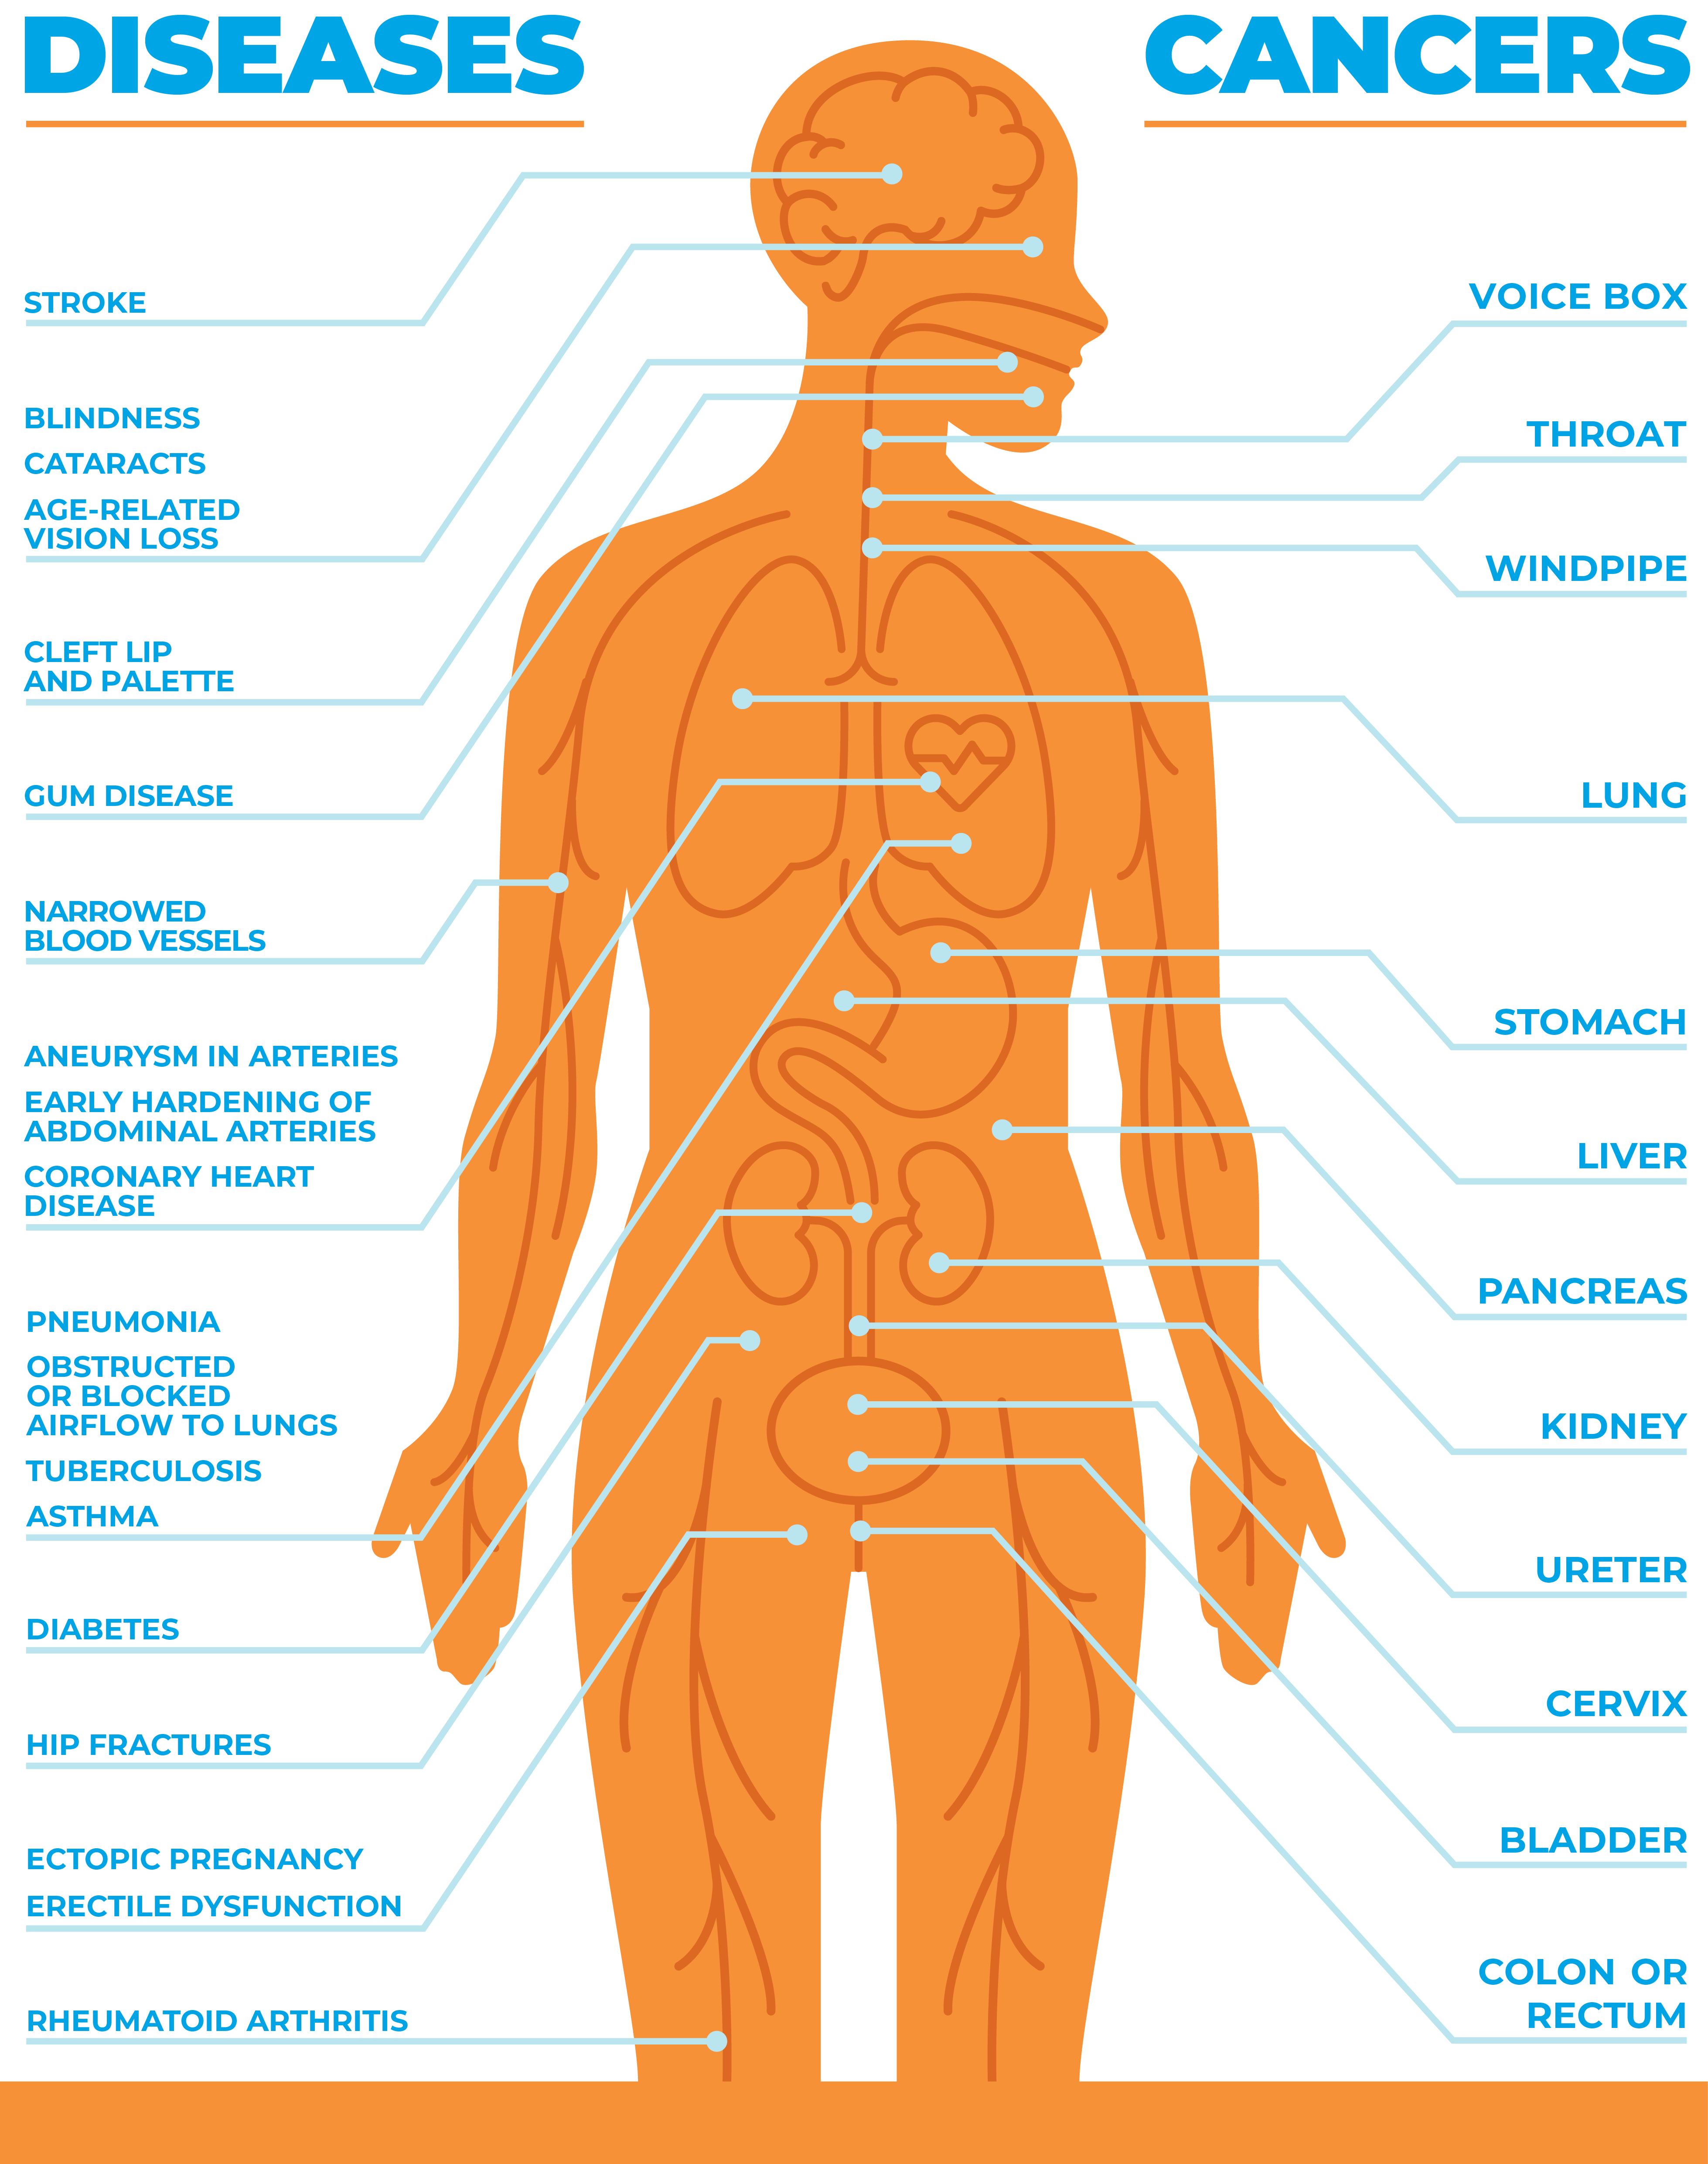 graphic illustration of a body with diseases and cancers caused by tobacco